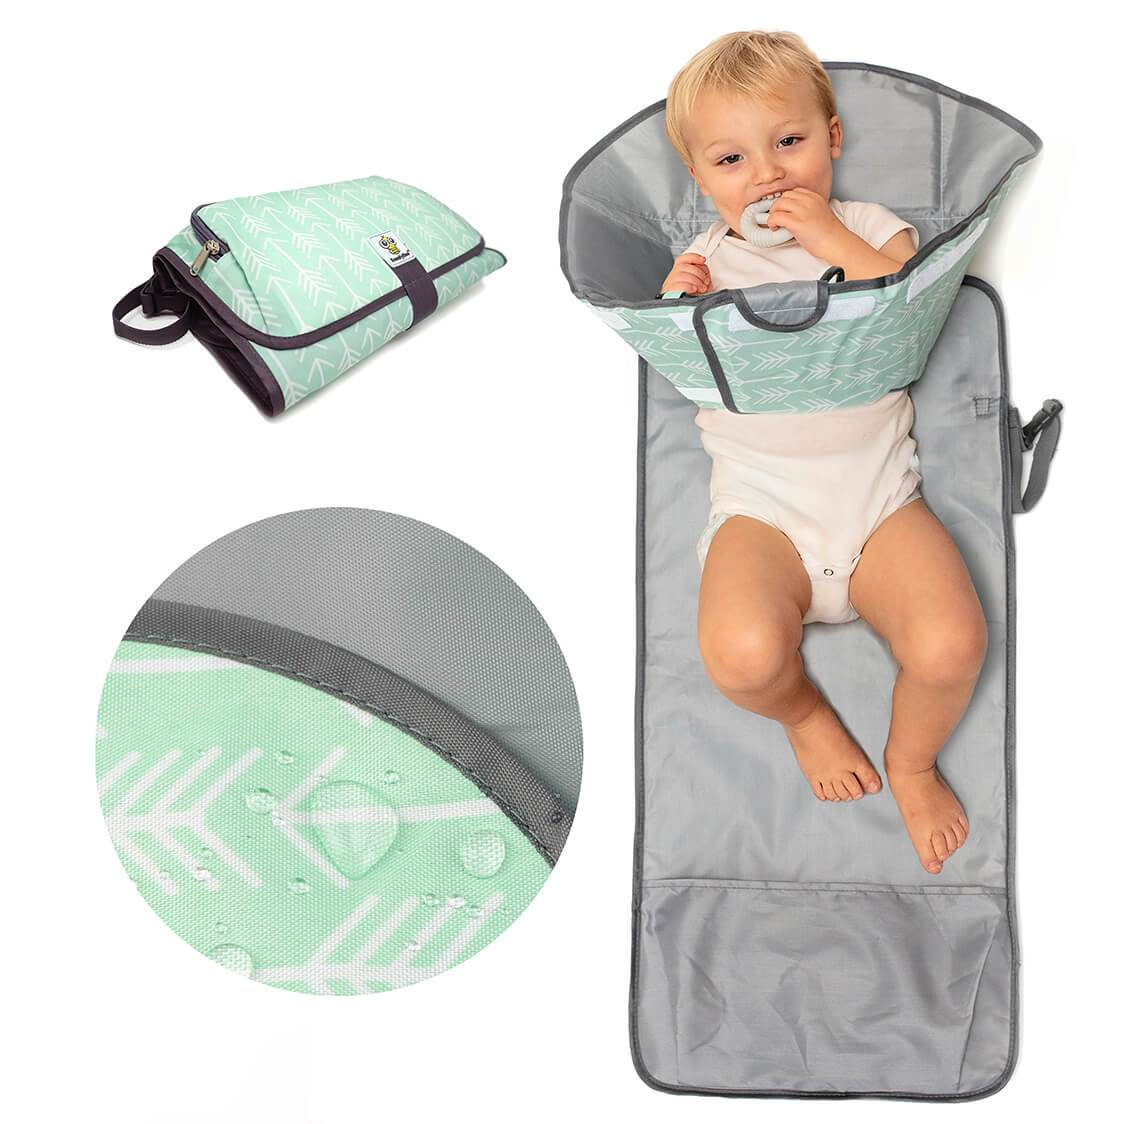 SnoofyBee Changing Pad, $35.99